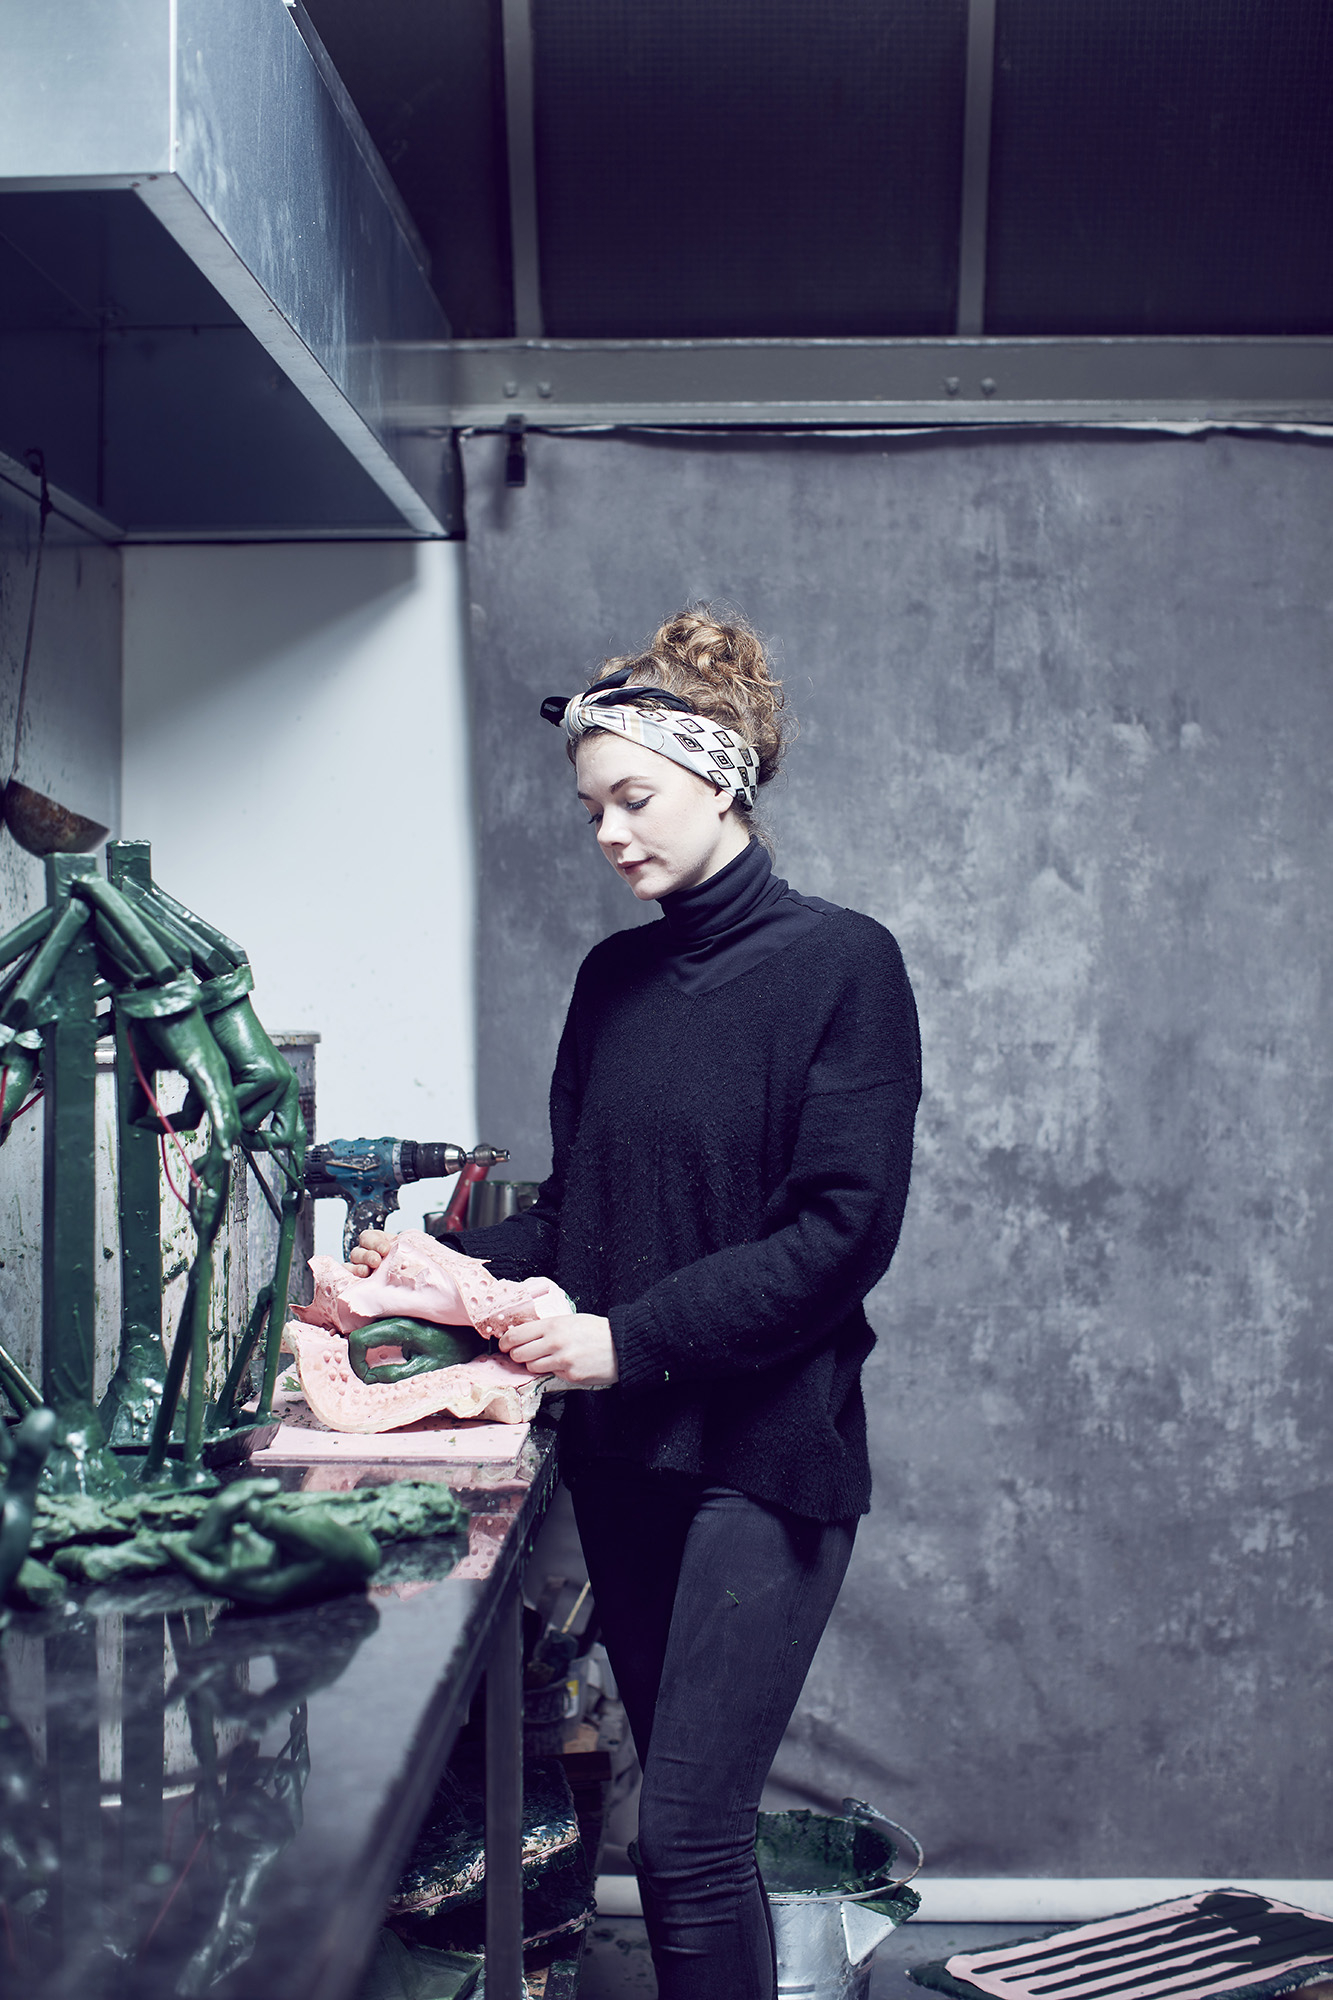 In the Workshops of Cox London photographed by Alun Callender